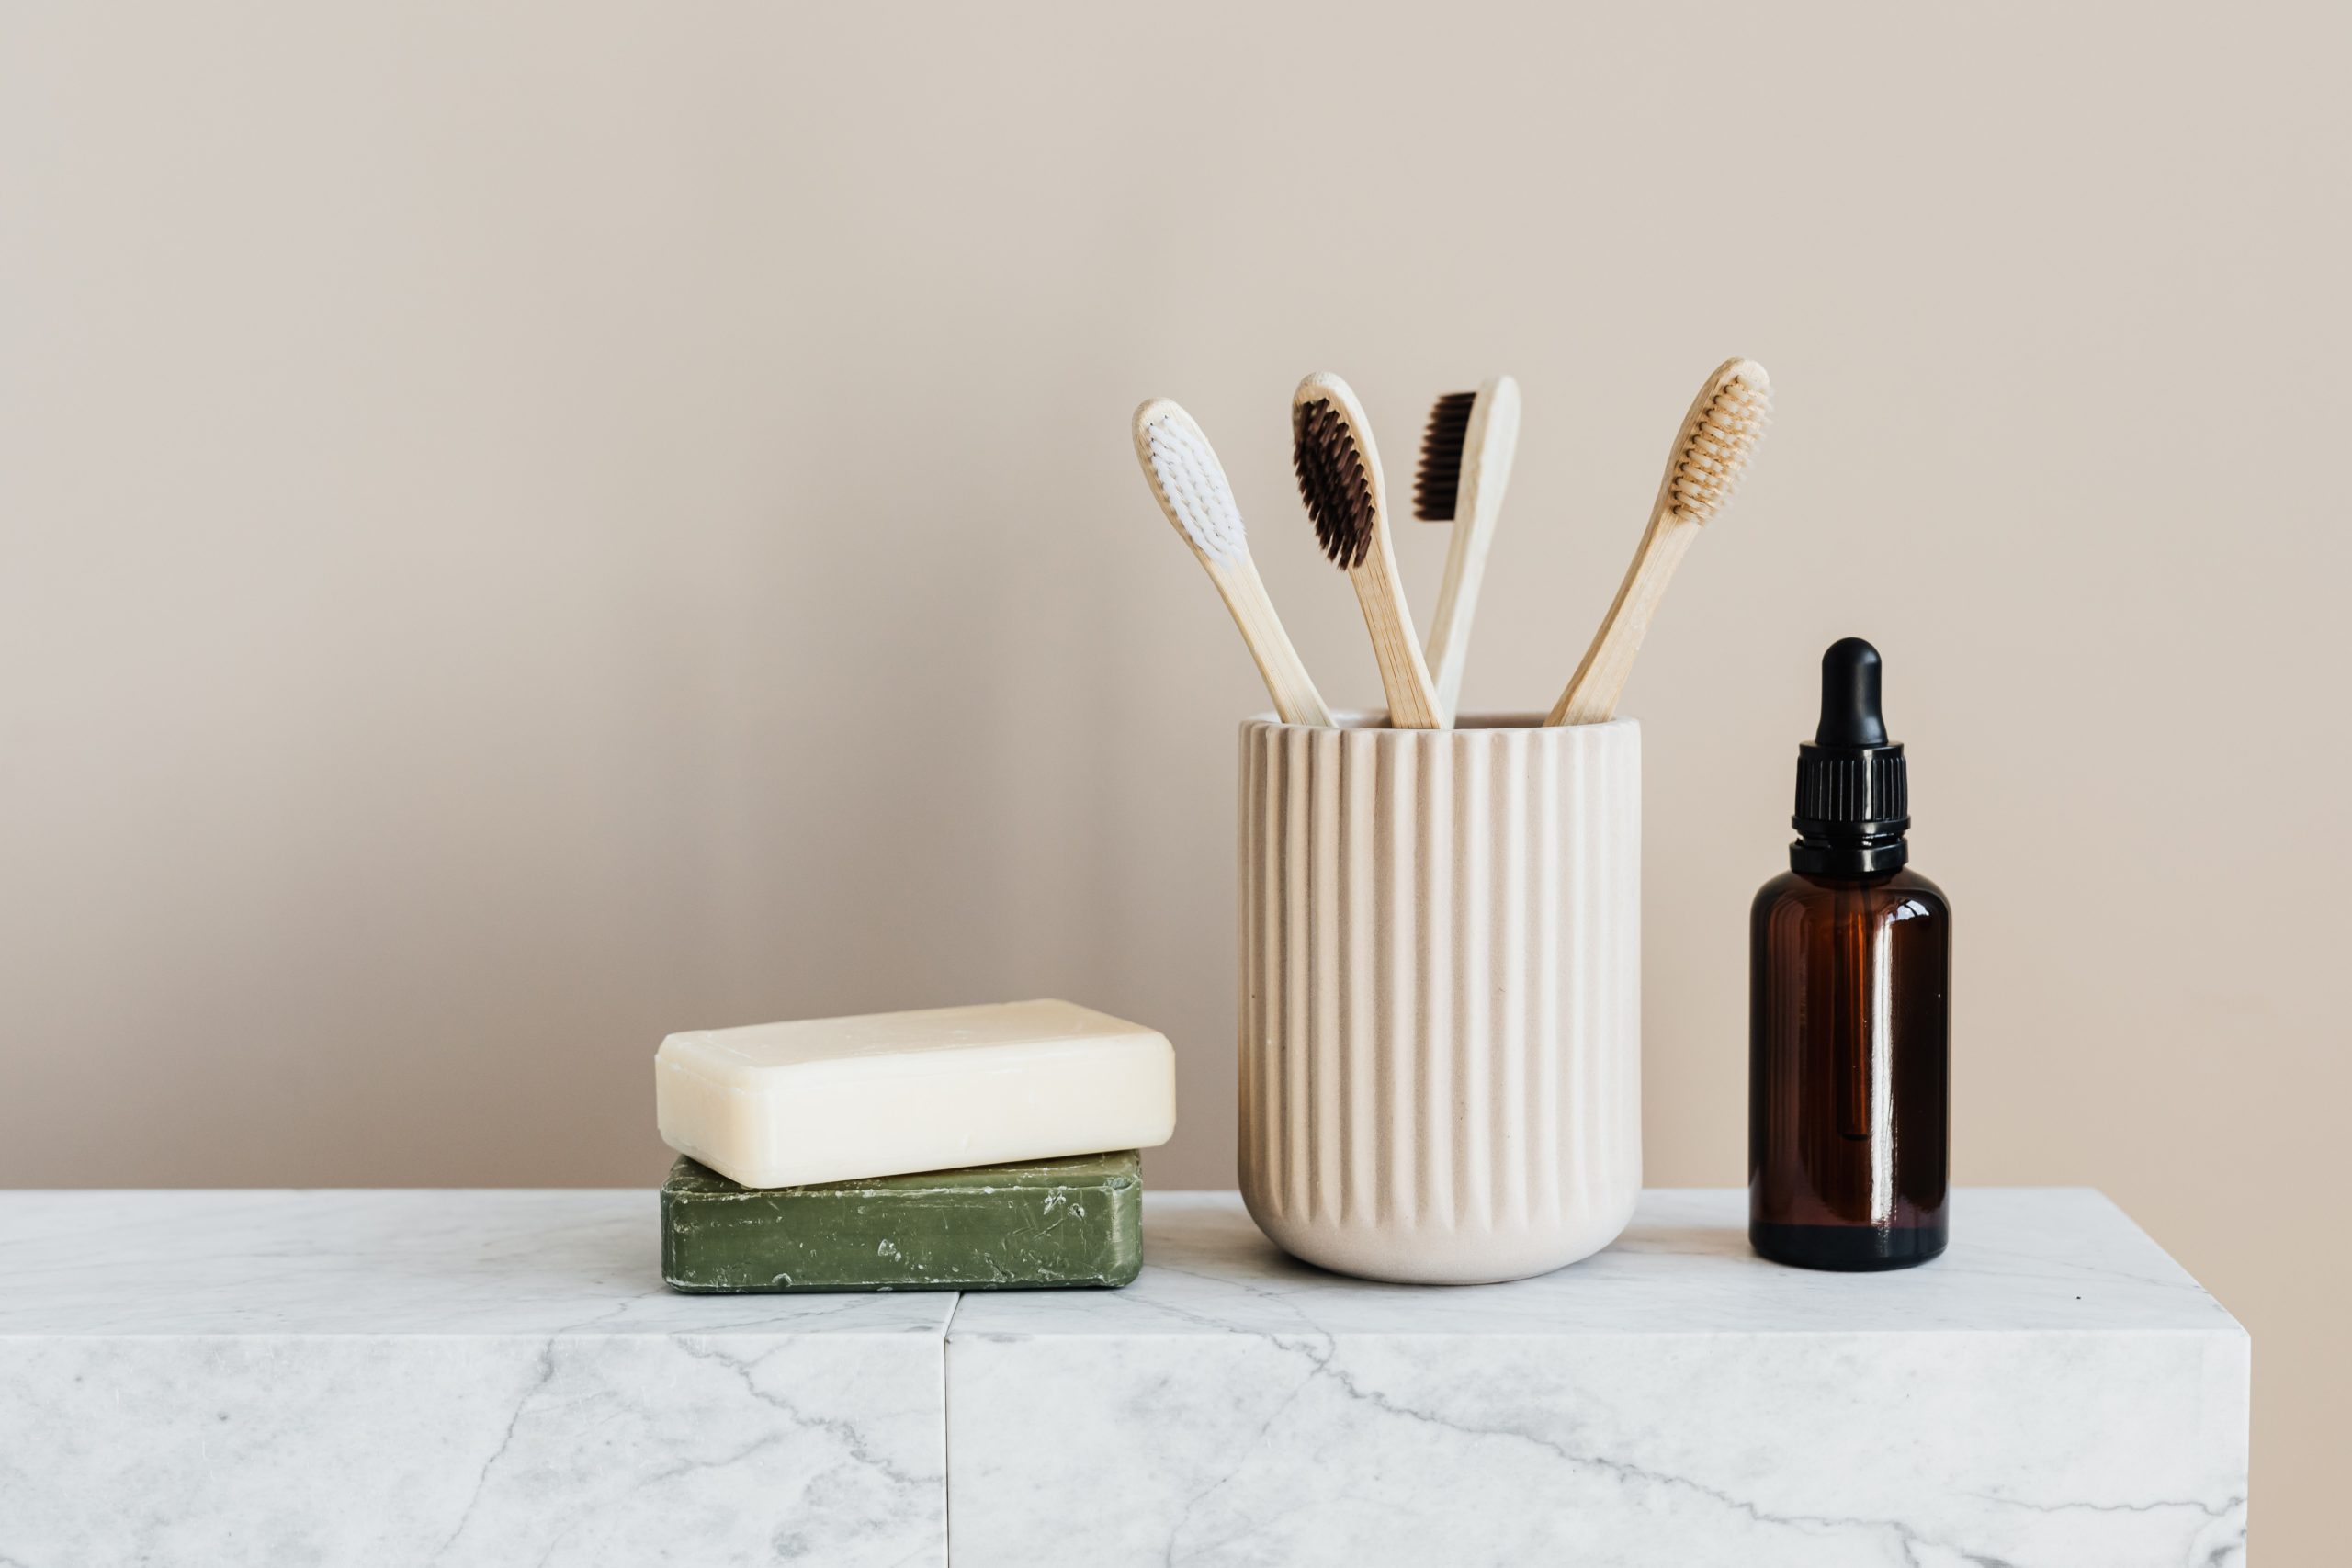 toothbrushes air drying in masculine bathroom with soap and oil